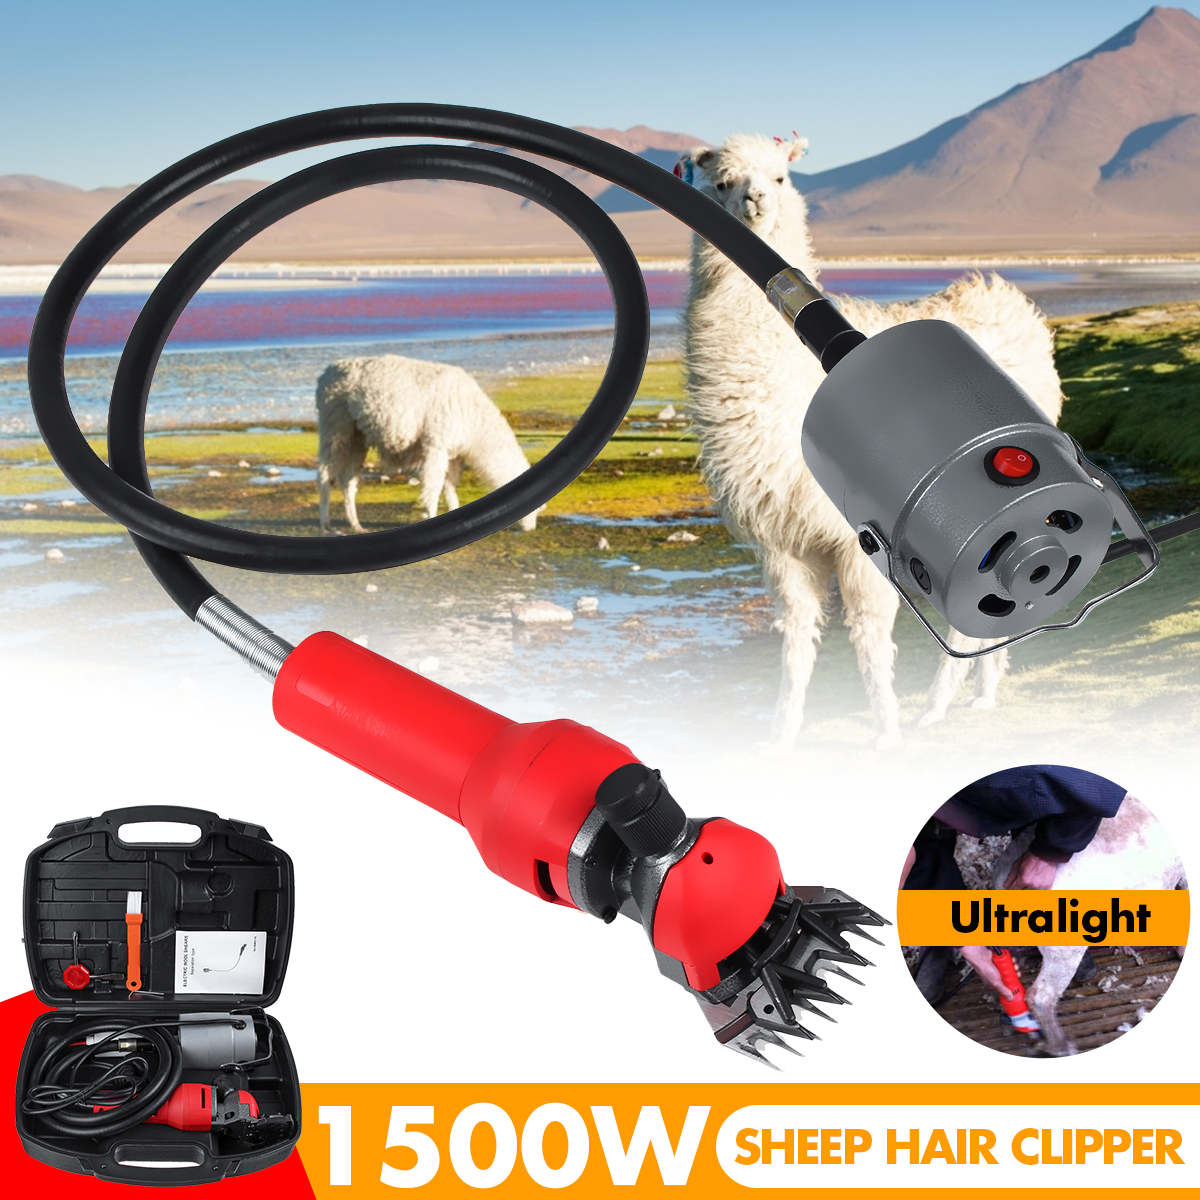 1500W Ultralight Electric Sheep Goat Shearing Machine Clipper Farm Shears Cutter Wool Scissor Cut Machine With Box